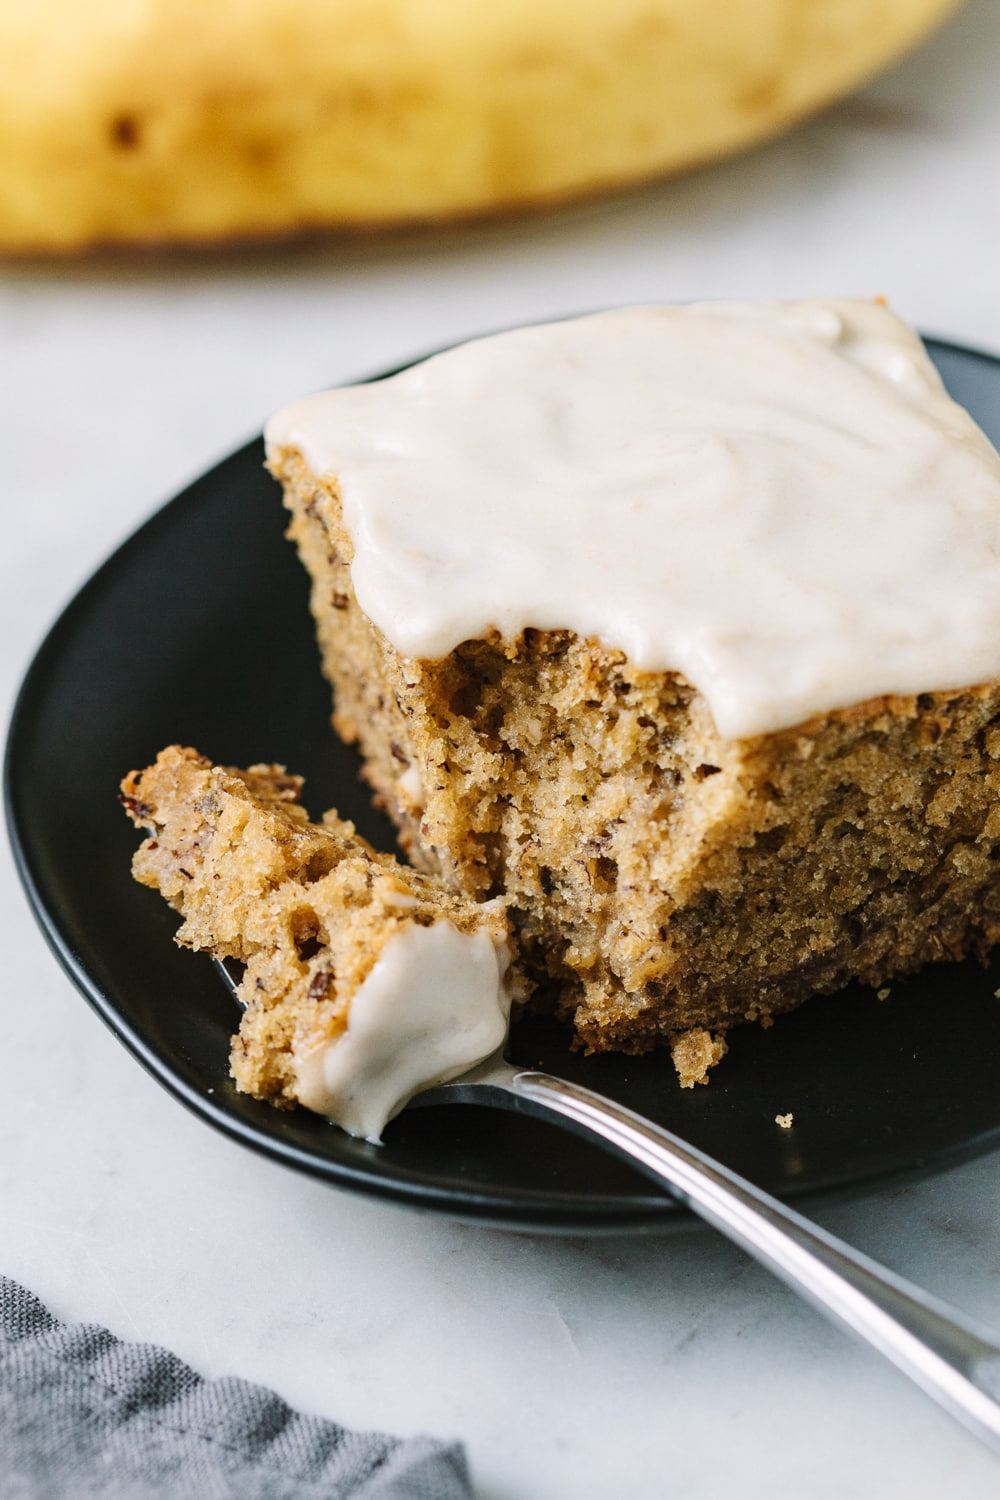 side angle view of a slice of banana cake with cashew frosting on a small black plate.